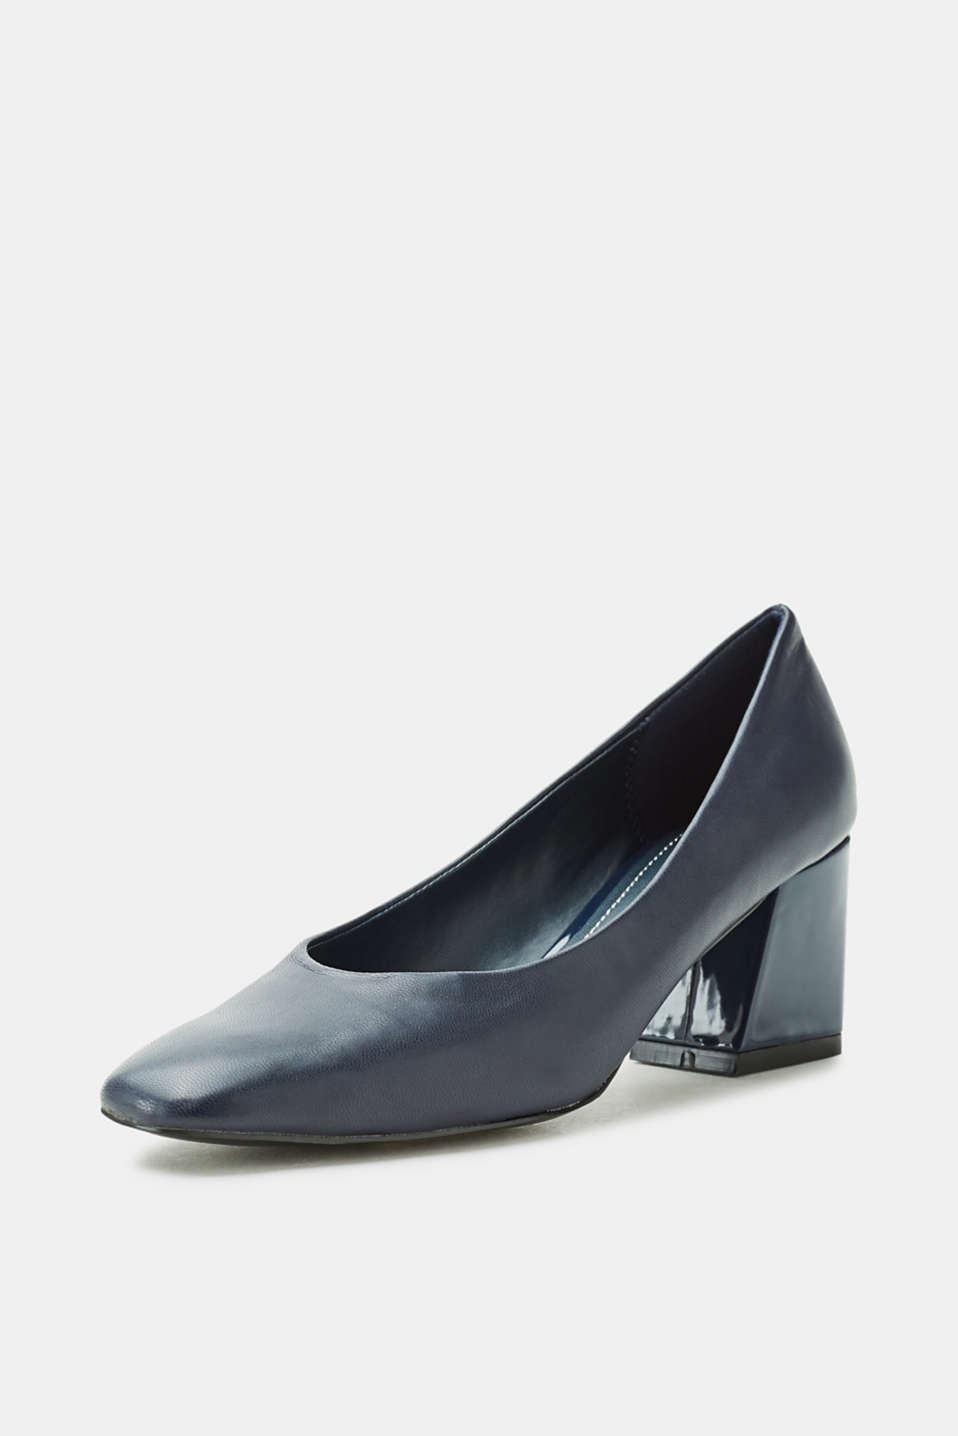 Court shoes with a block heel